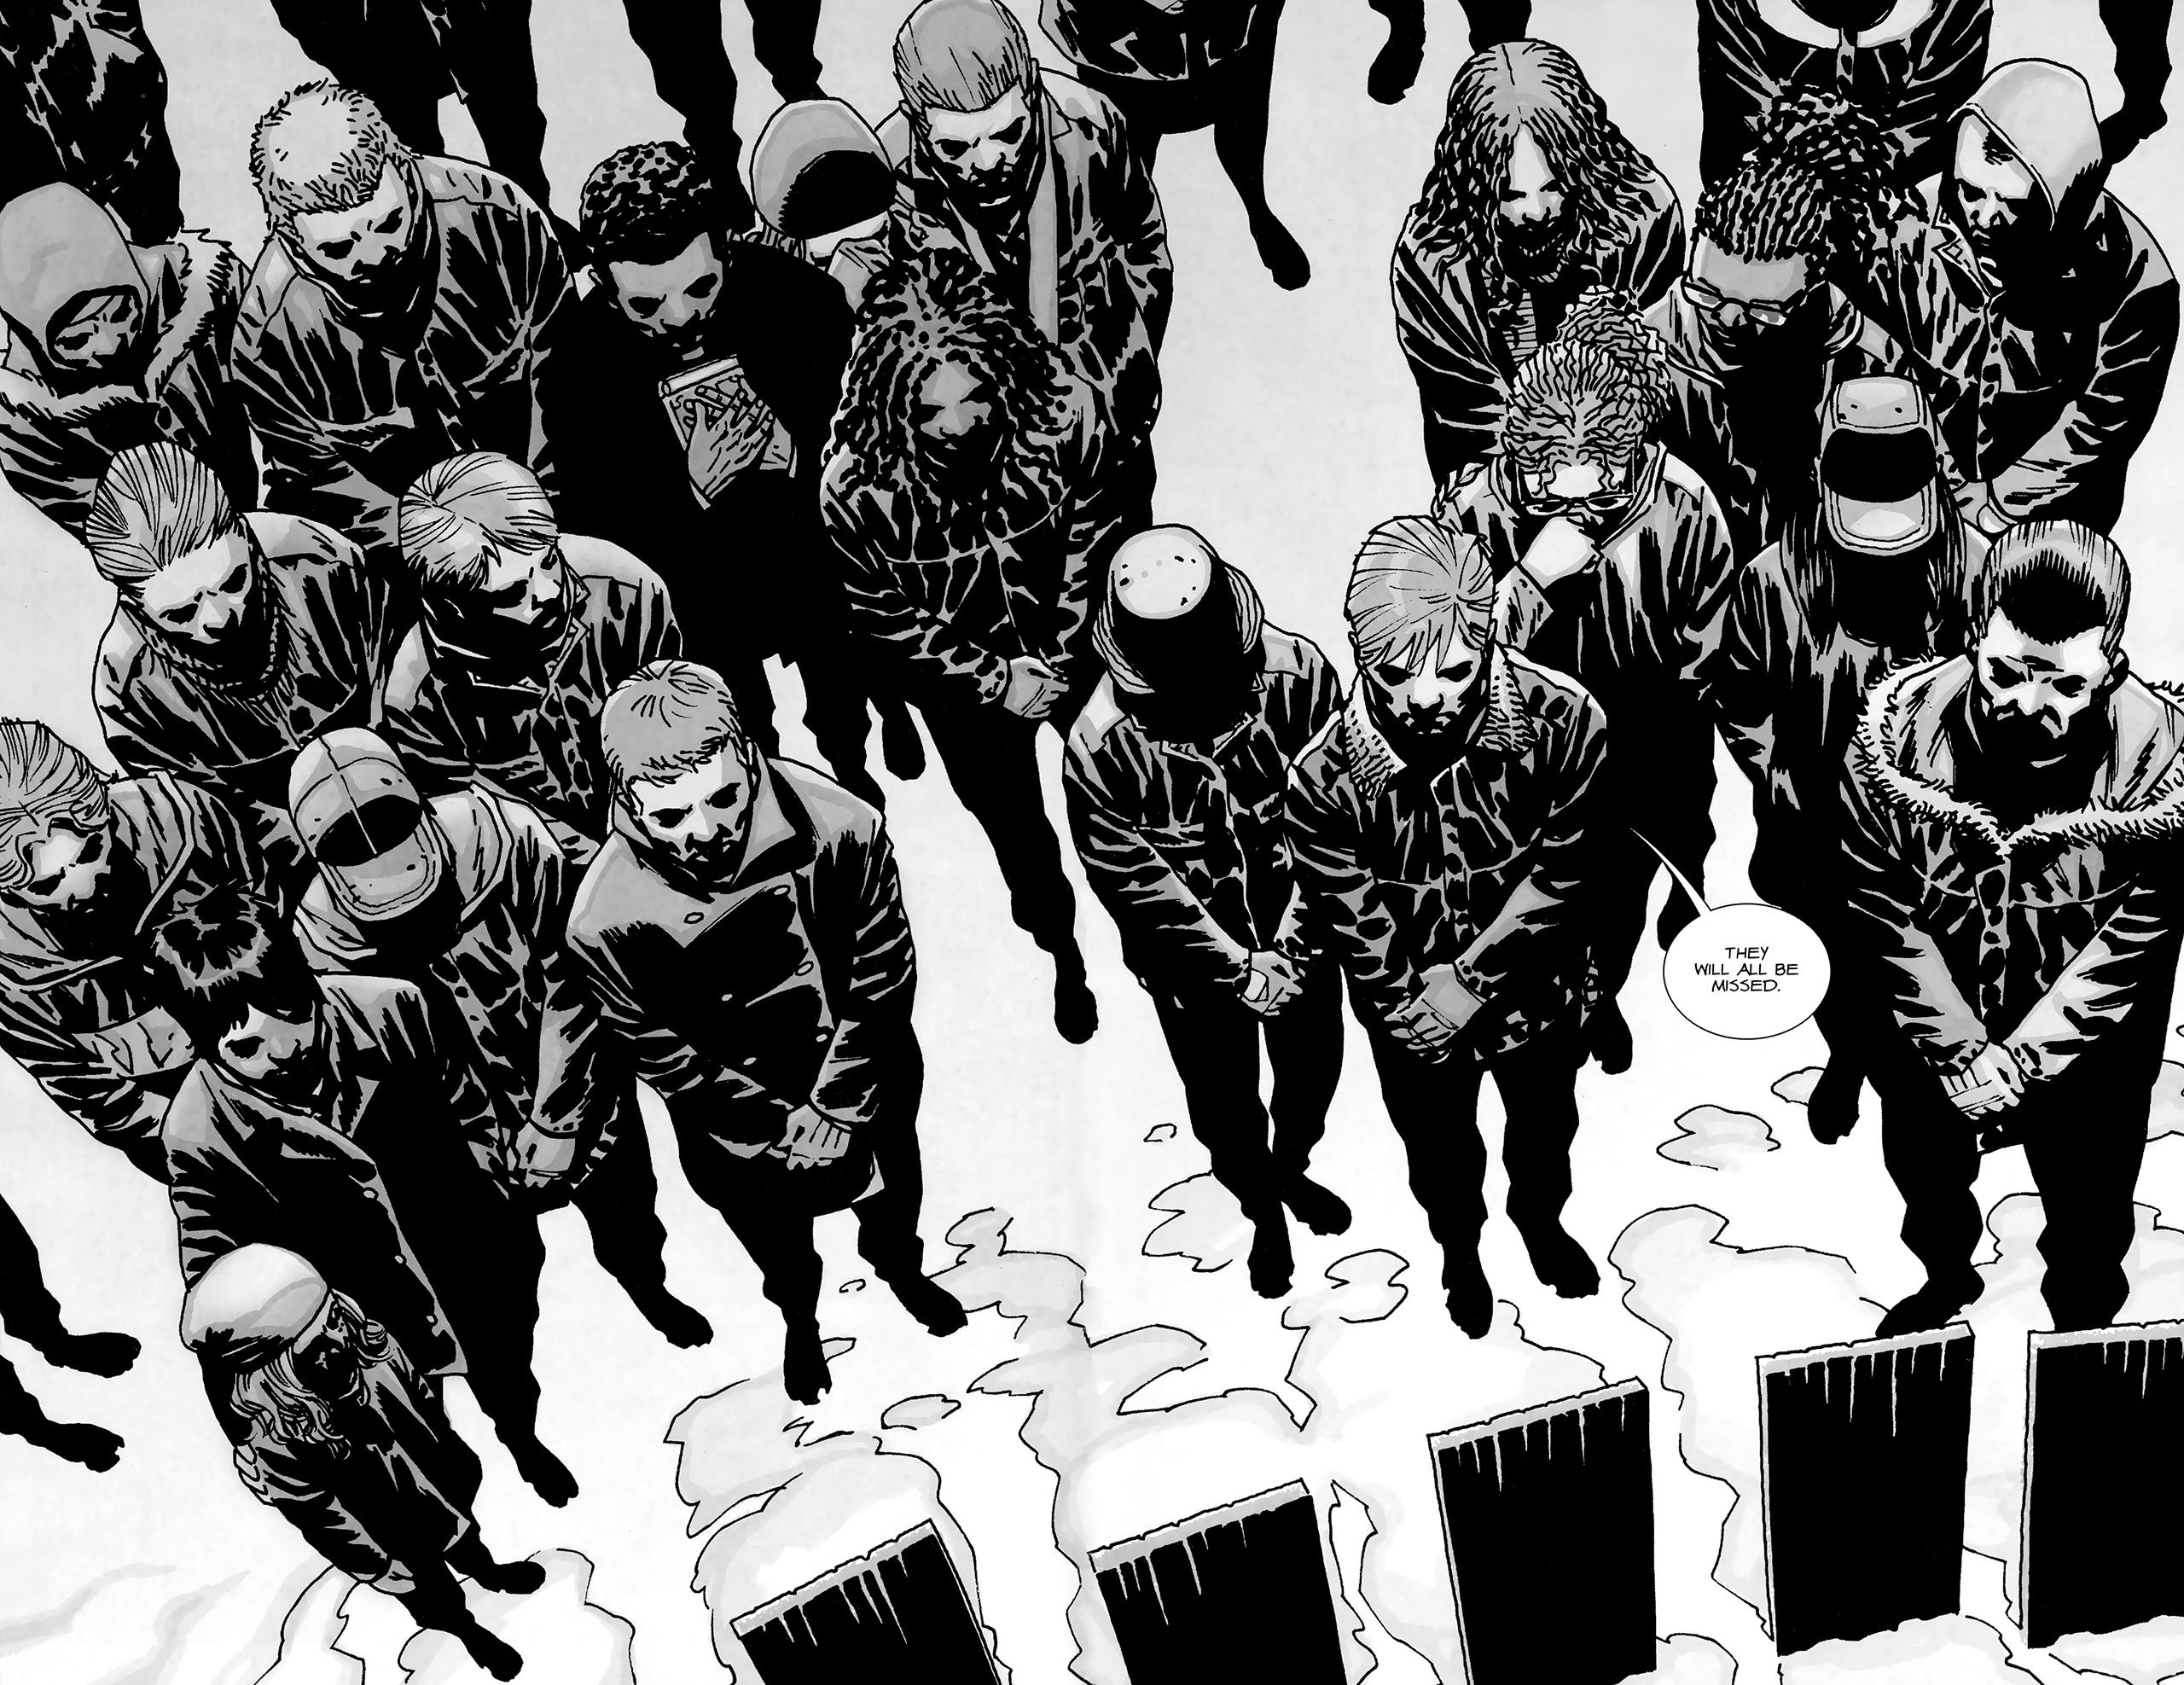 The Walking Dead 15 We Find Ourselves review